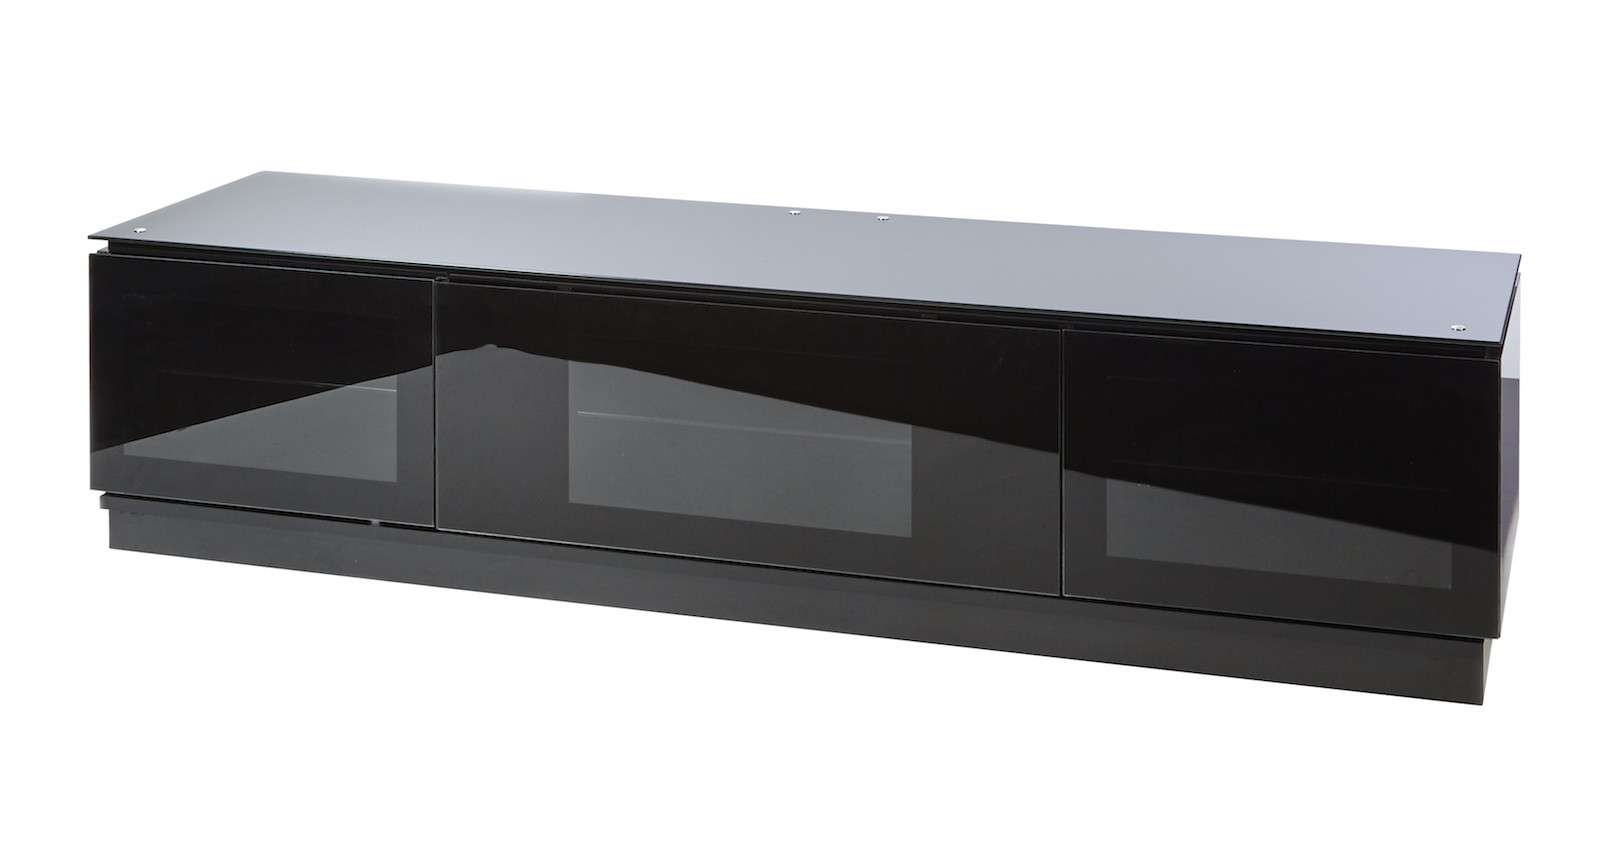 Black Gloss Tv Unit Up To 80 Inch Flat Screen Tv | Mmt D1800 Throughout Tv Cabinets Gloss (View 3 of 20)